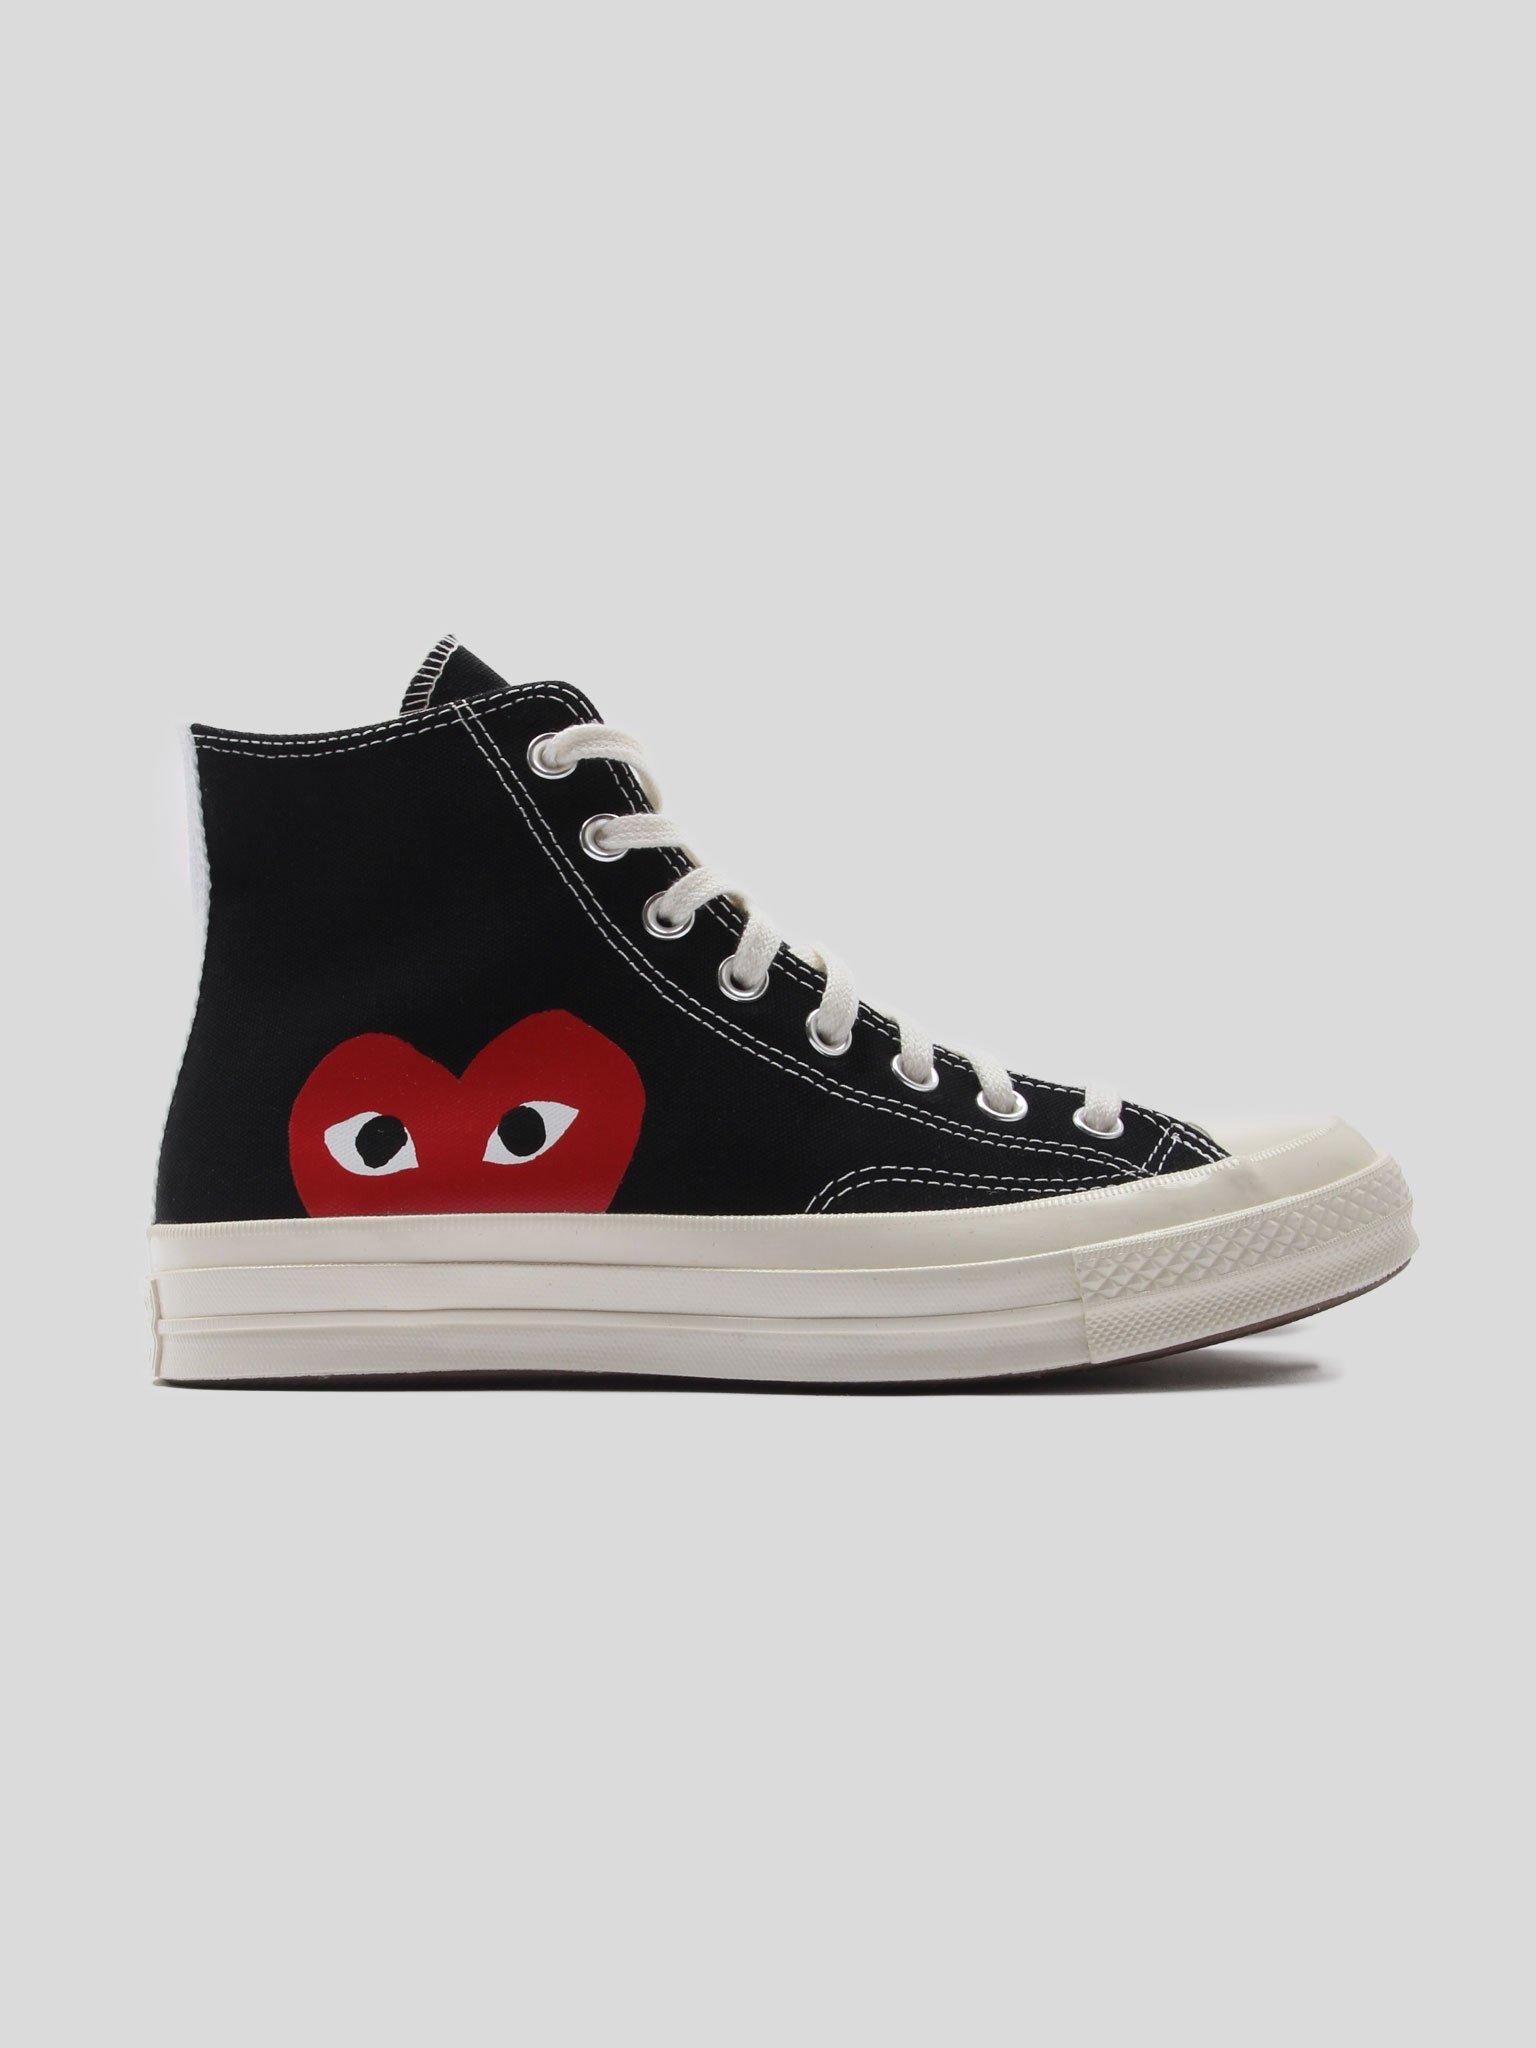 Modernización Feudal para justificar  COMME DES GARÇONS PLAY Black Converse Edition Half Heart Chuck 70 High  Sneakers - Save 19% - Lyst